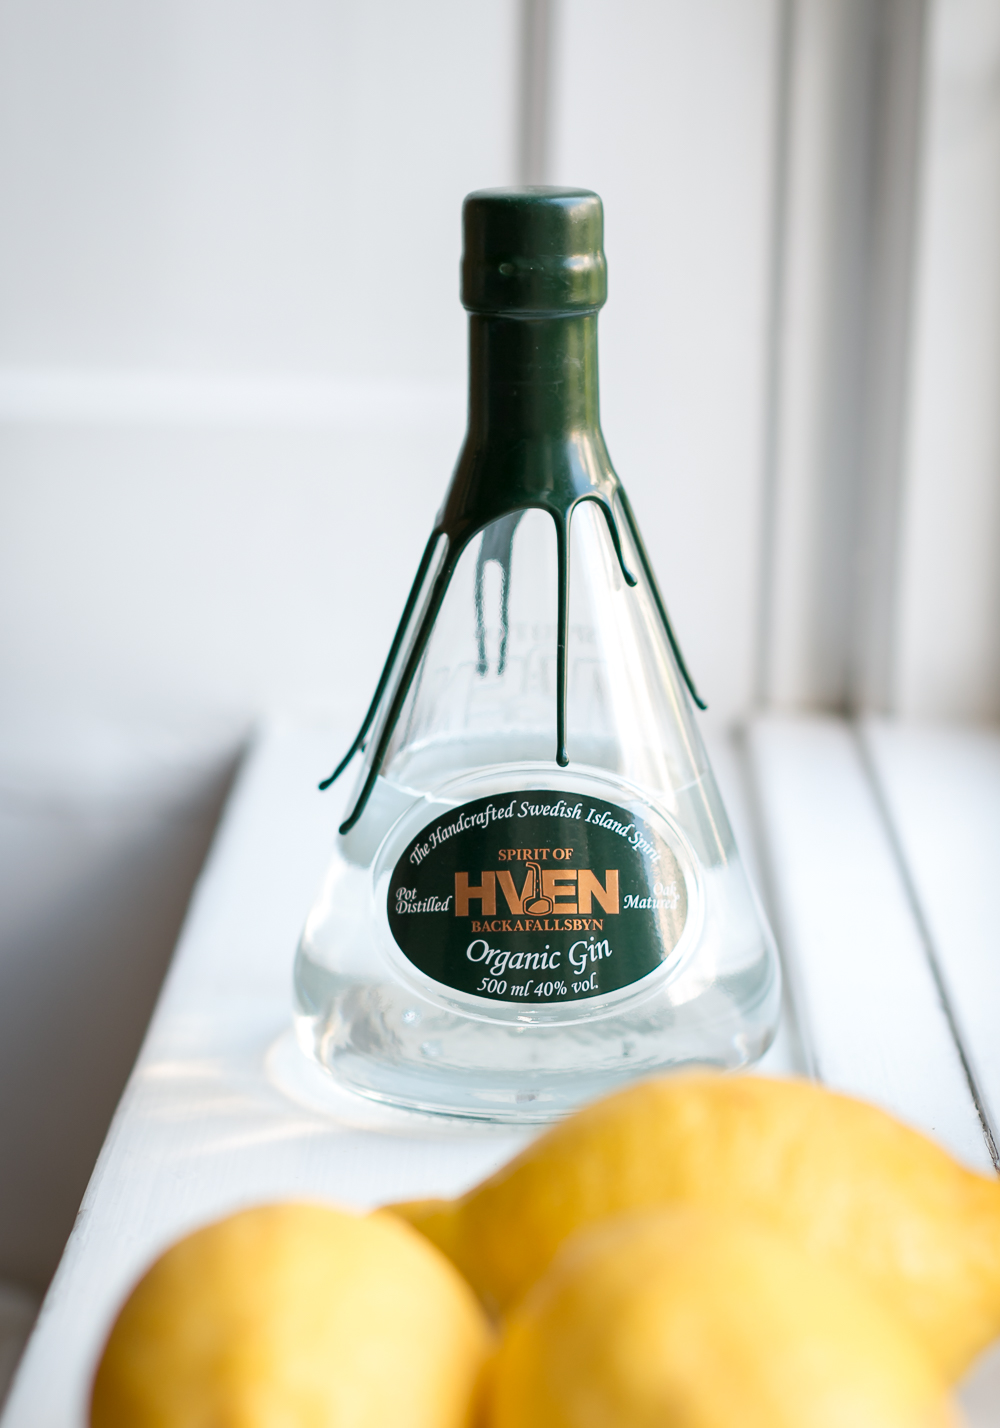 Hven Gin. Gin and Tonic. Photo by Michael Sperling.